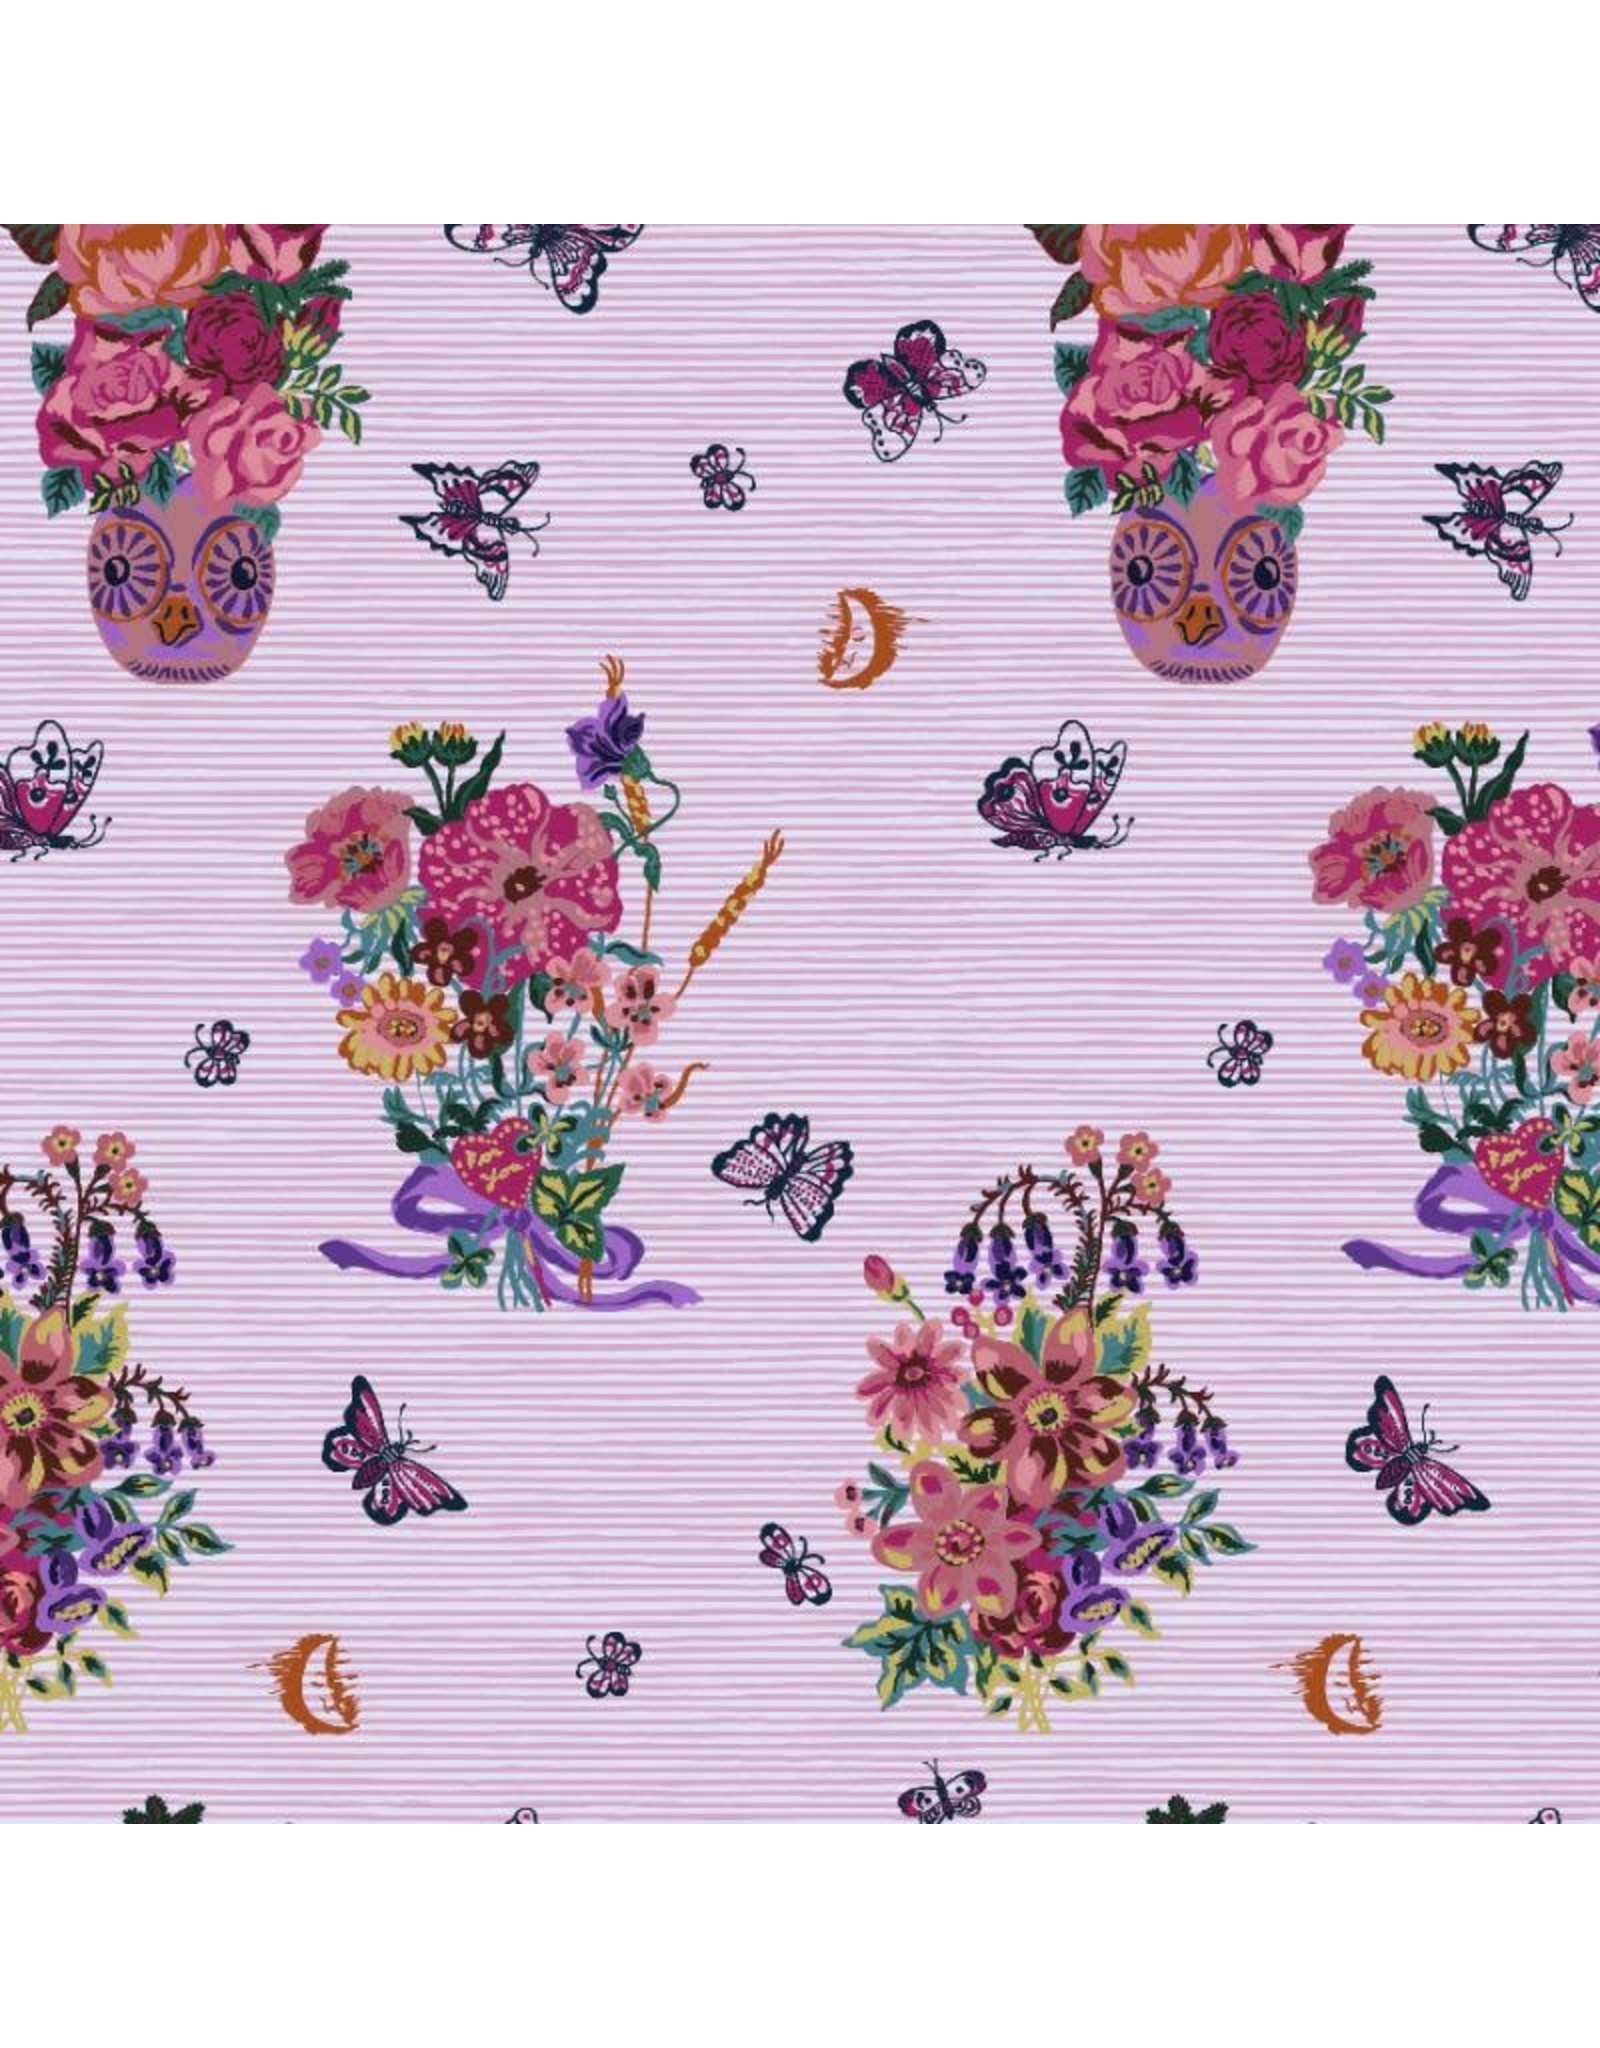 Nathalie Lété Sunday in the Country, Early Morning in Gabi, Fabric Half-Yards PWNL009